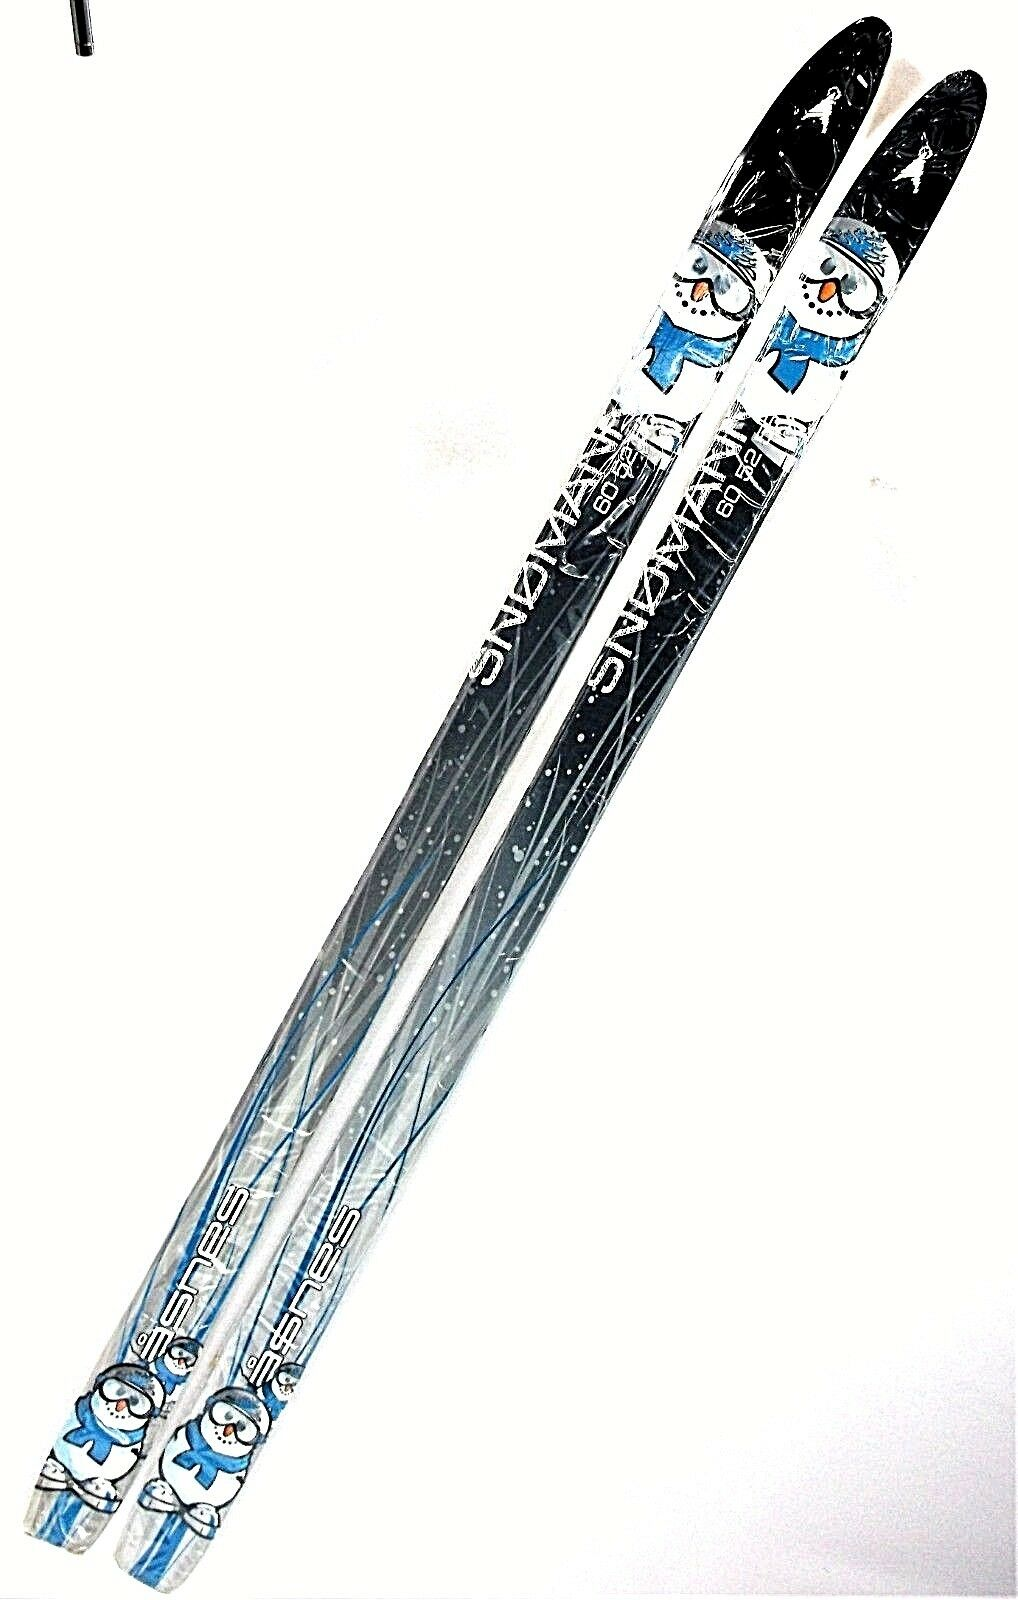 KIDS Cross Country Skis,Asnes Snowman 100 cm, Waxless Fishscaled, UNMOUNTED